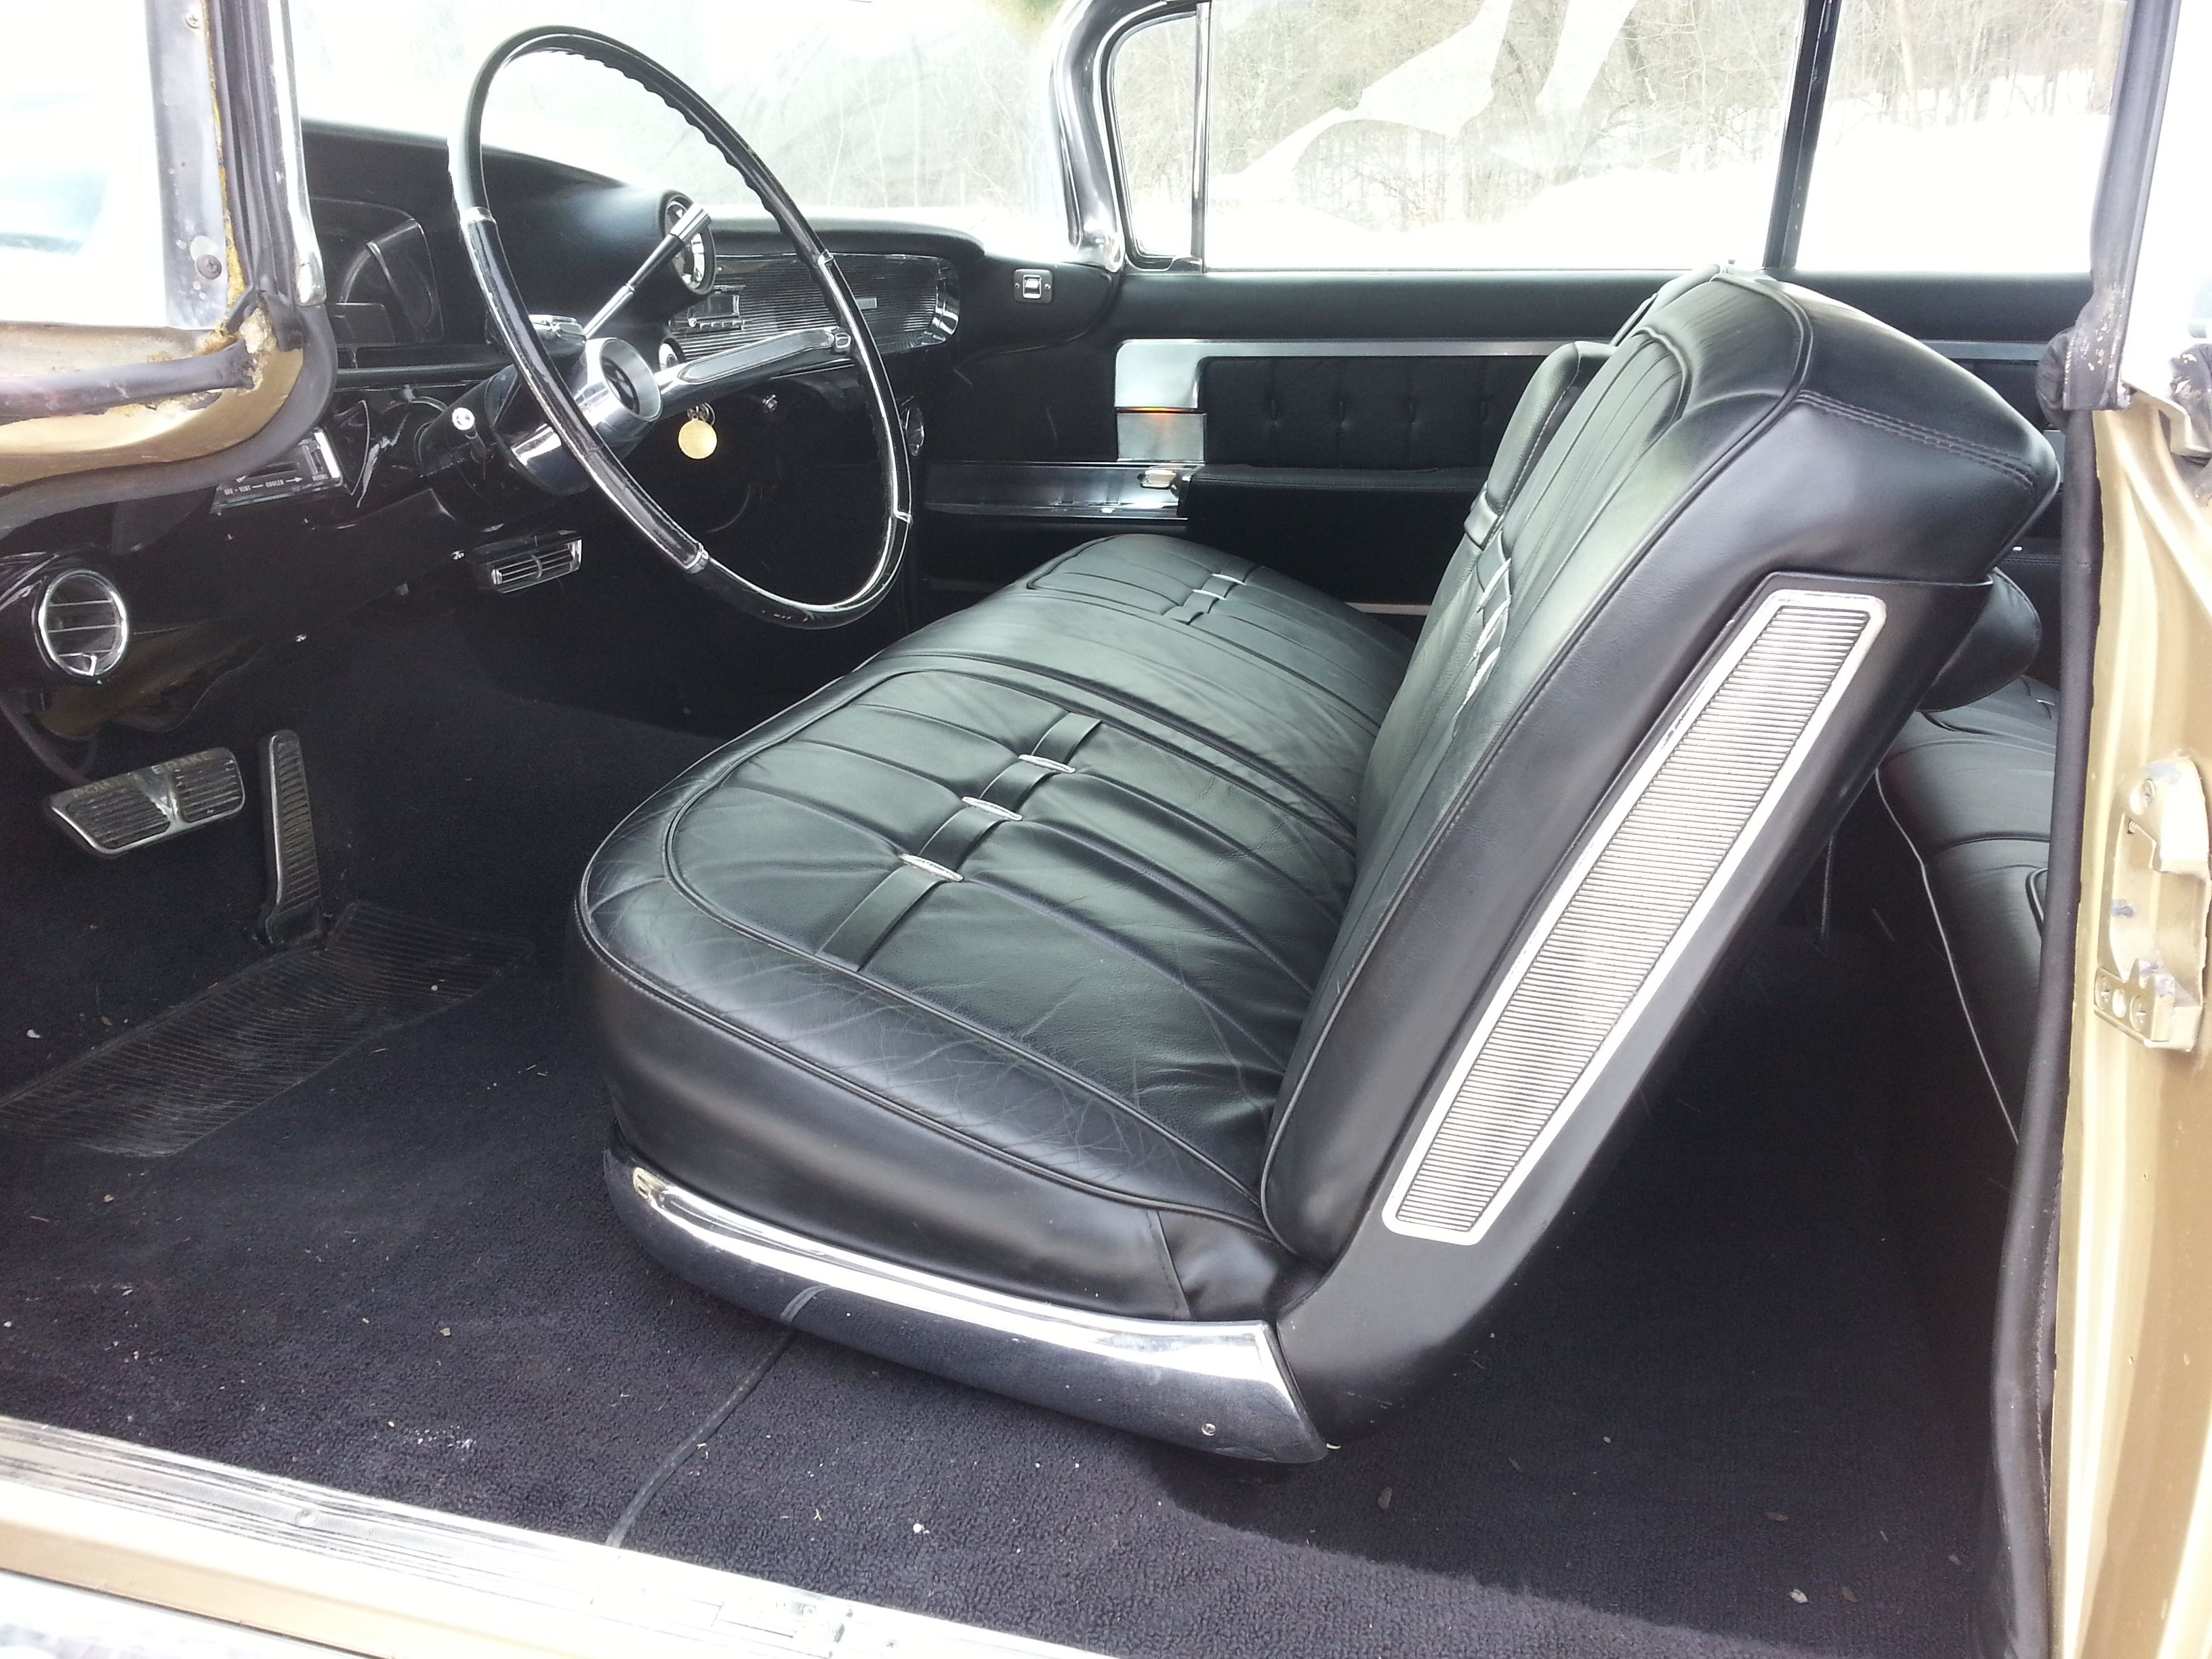 Ultra rare and highly collectible bucket seat 1960 cadillac eldorado biarritz in for some restoration